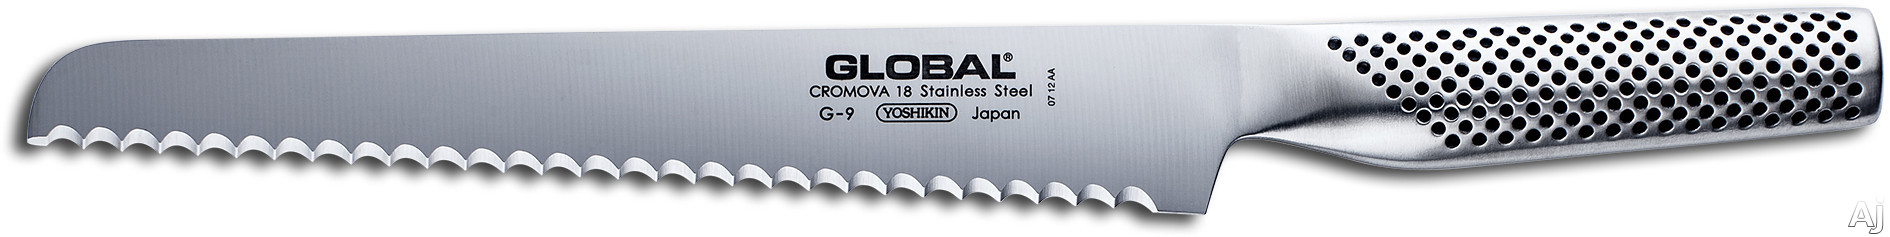 Global G9A 8-1/2 Inch Serrated Bread Knife with Cromova Tempered Stainless Steel, Hollow Weighted Handle, Made in Japan and 2 Year Warranty